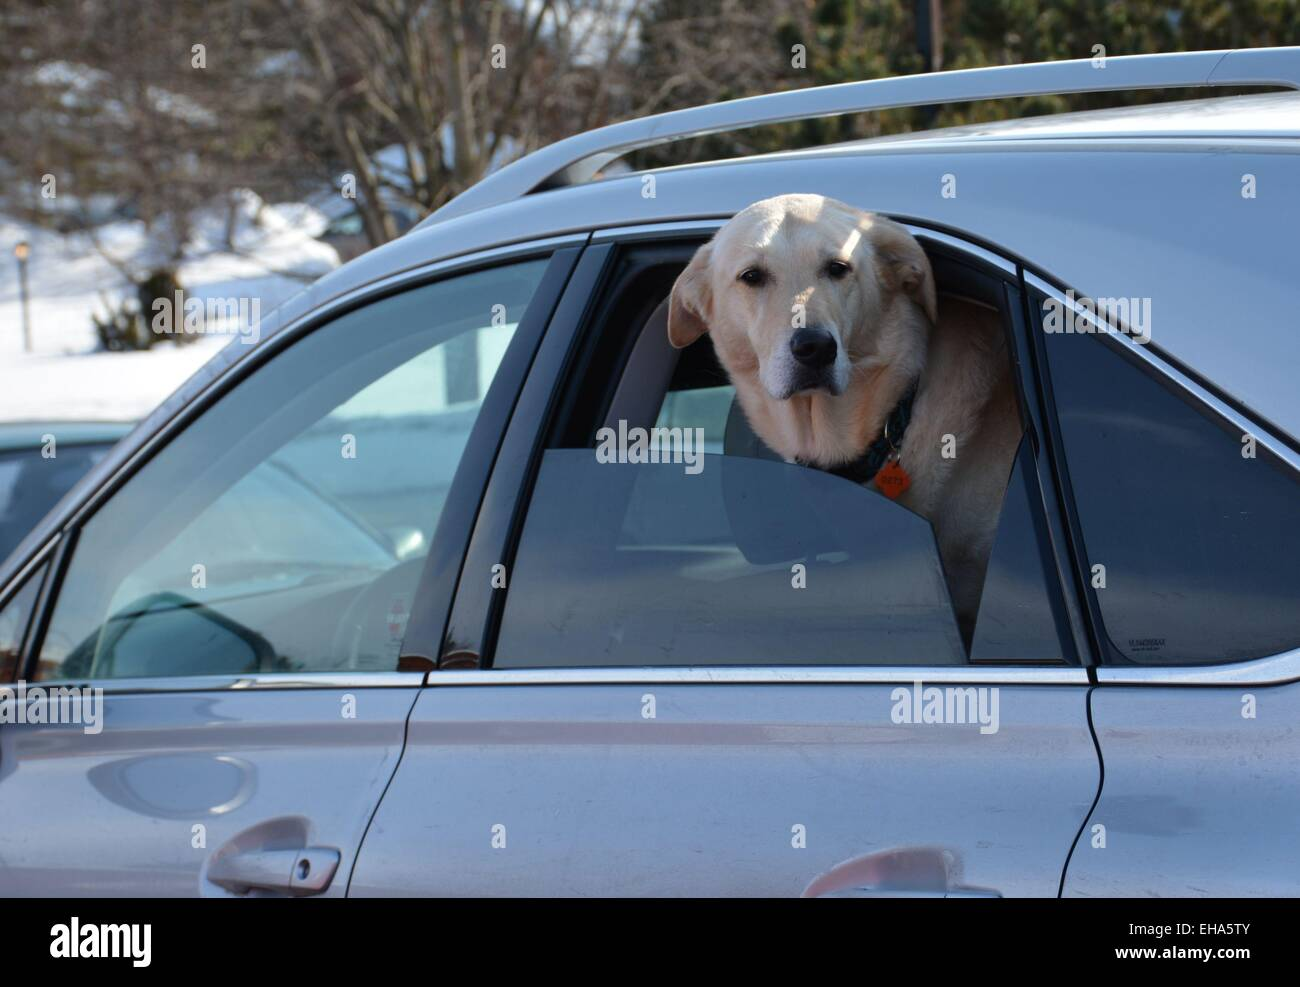 Curious dog pokes head out of a car window - Stock Image